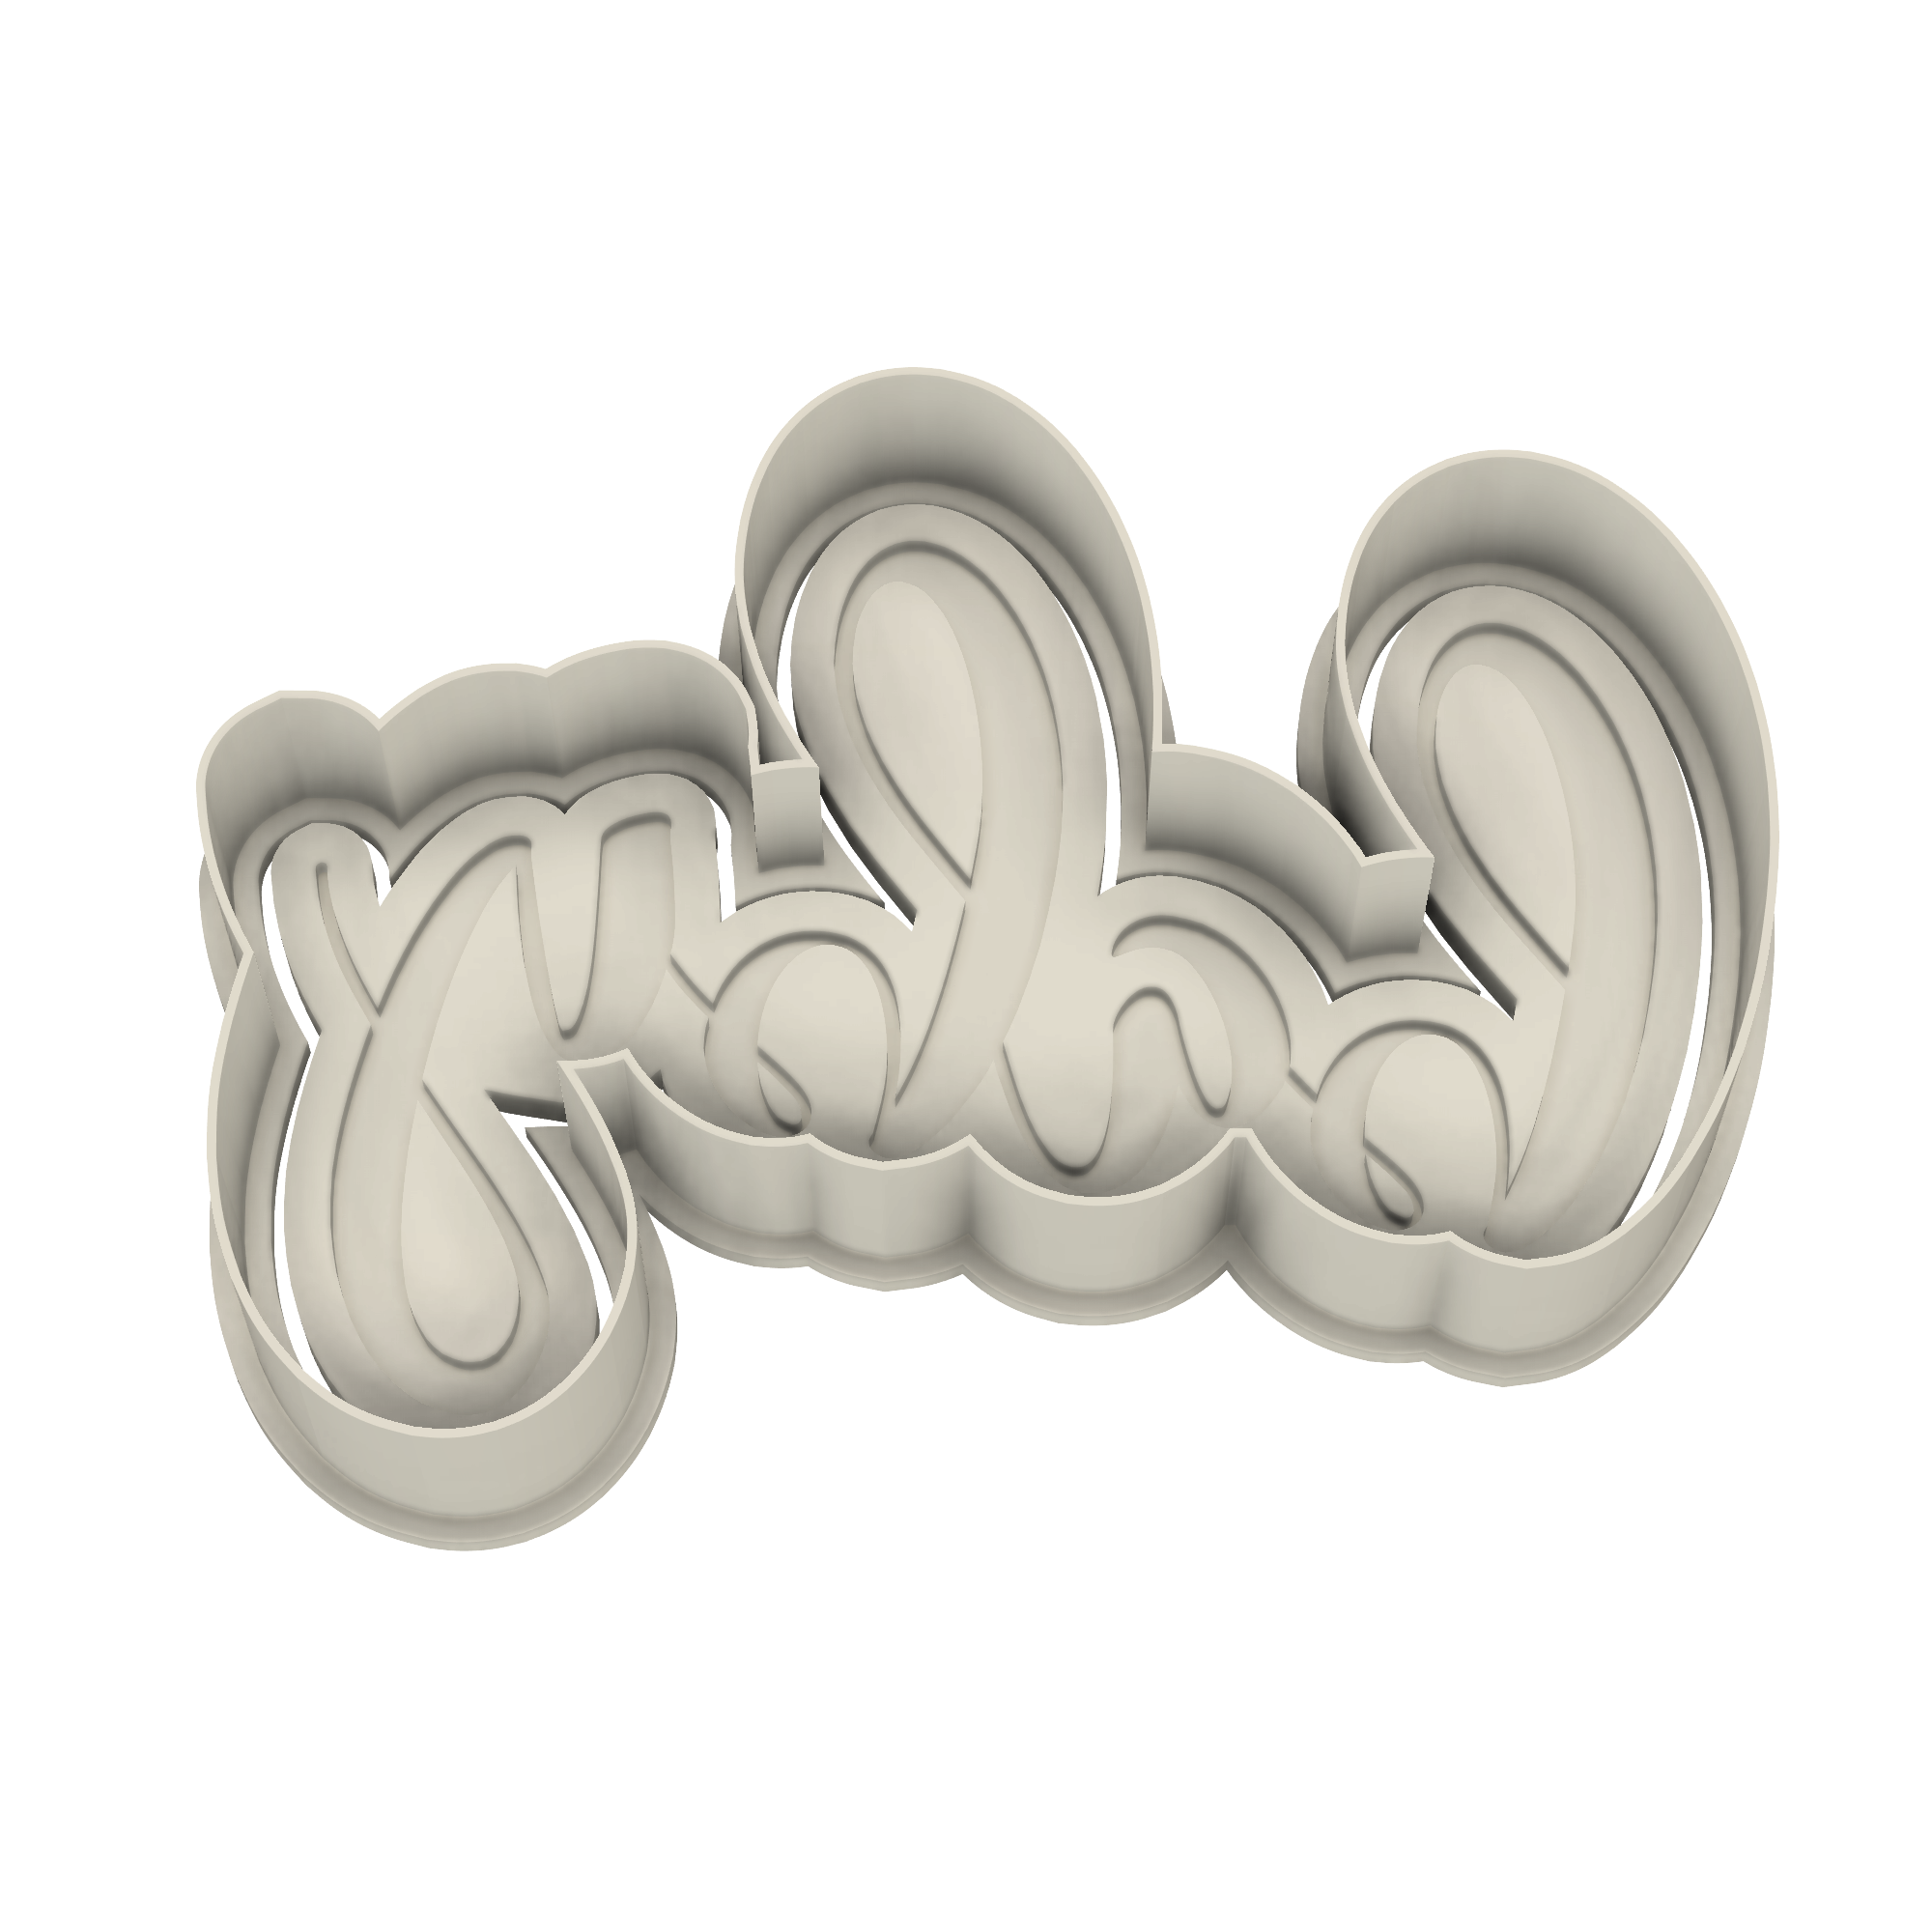 Baby Cookie Cutter - Dolce3D Cookie Cutters